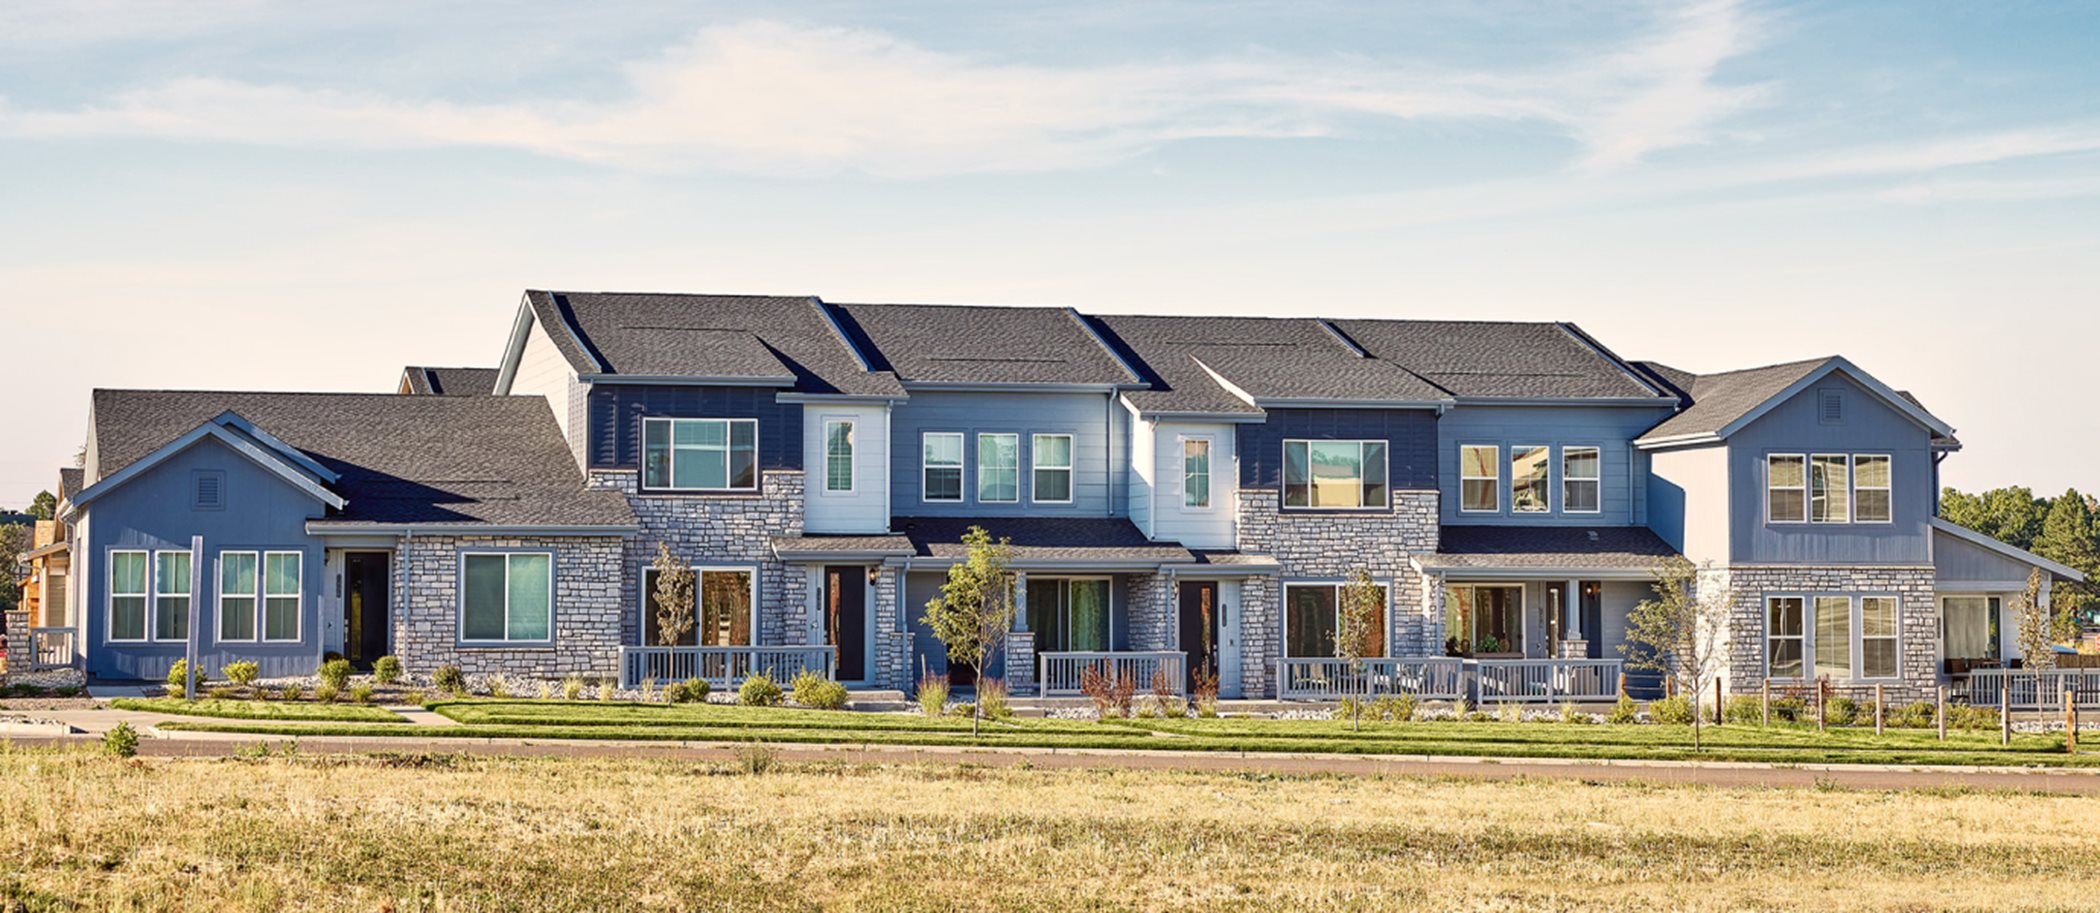 Lakeside Townhomes